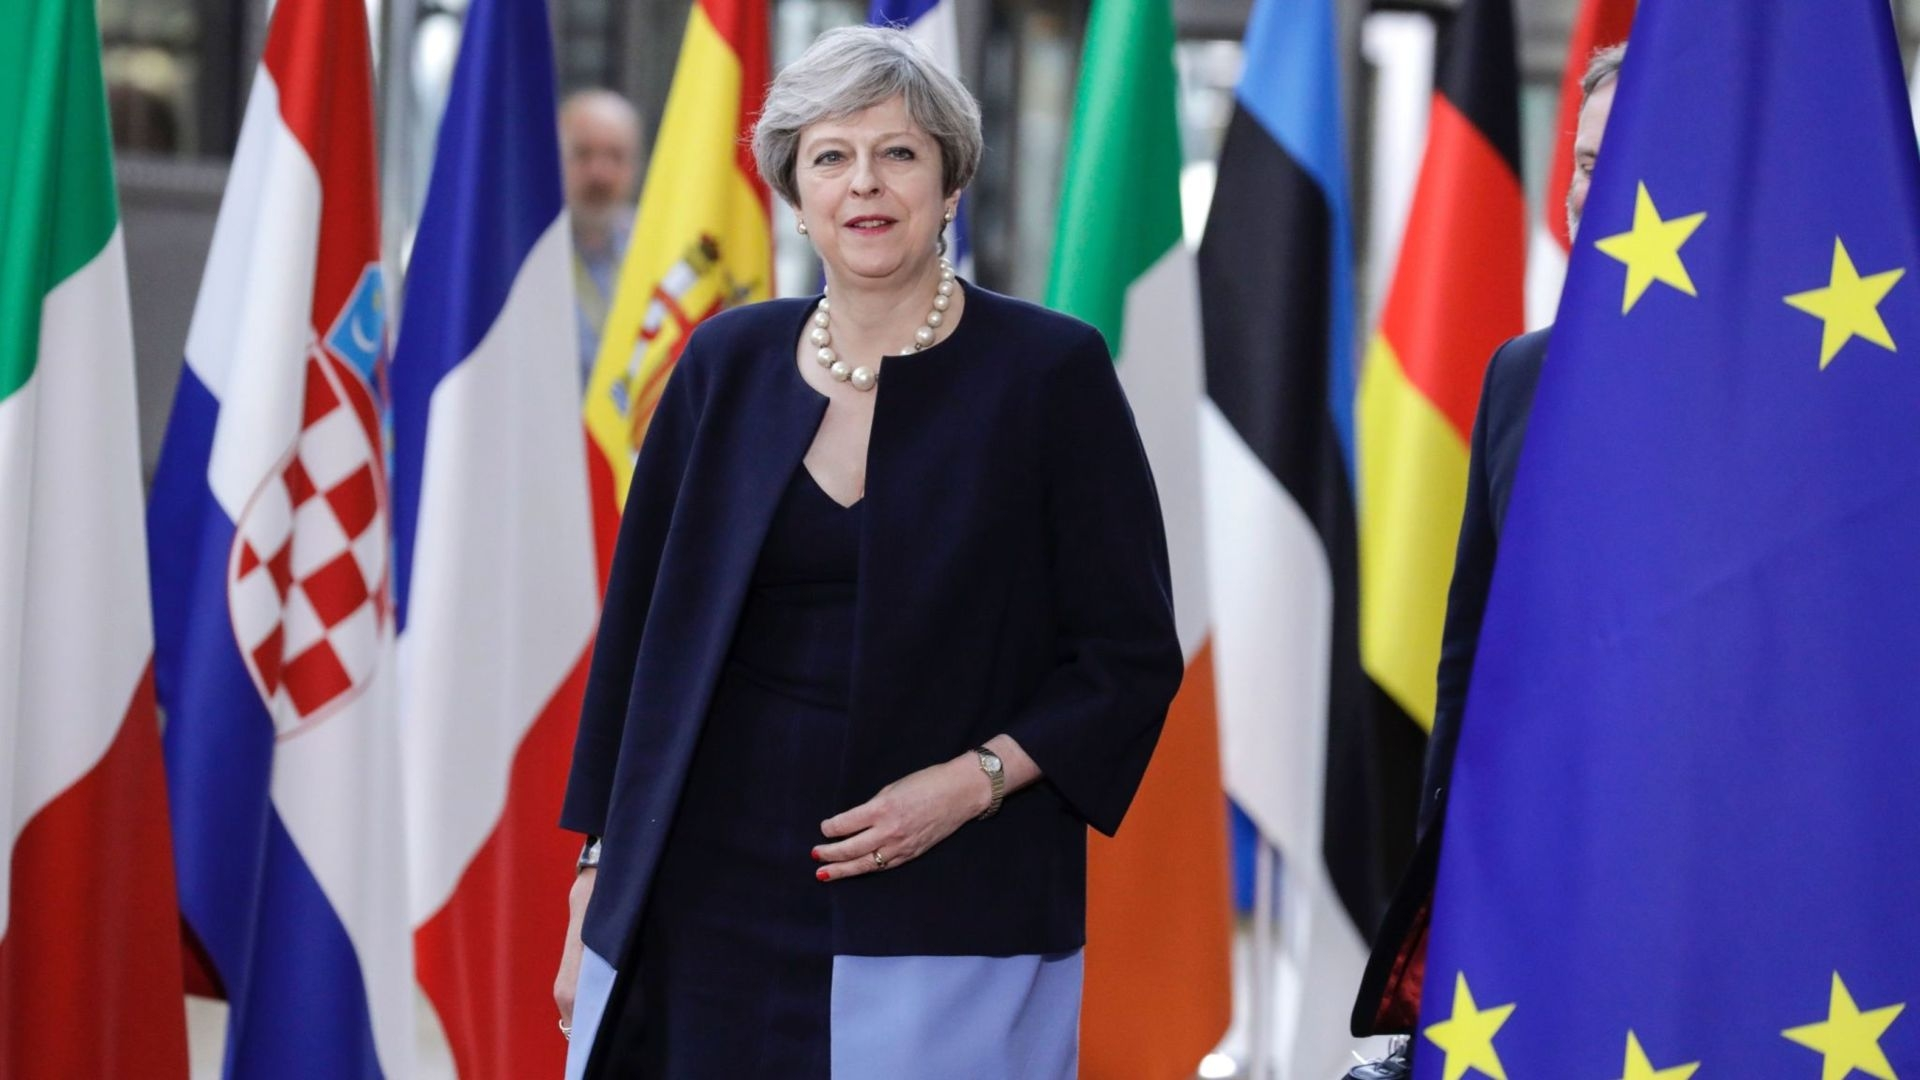 Theresa May made the offer at an EU summit in Brussels to let EU citizens remain in the UK.